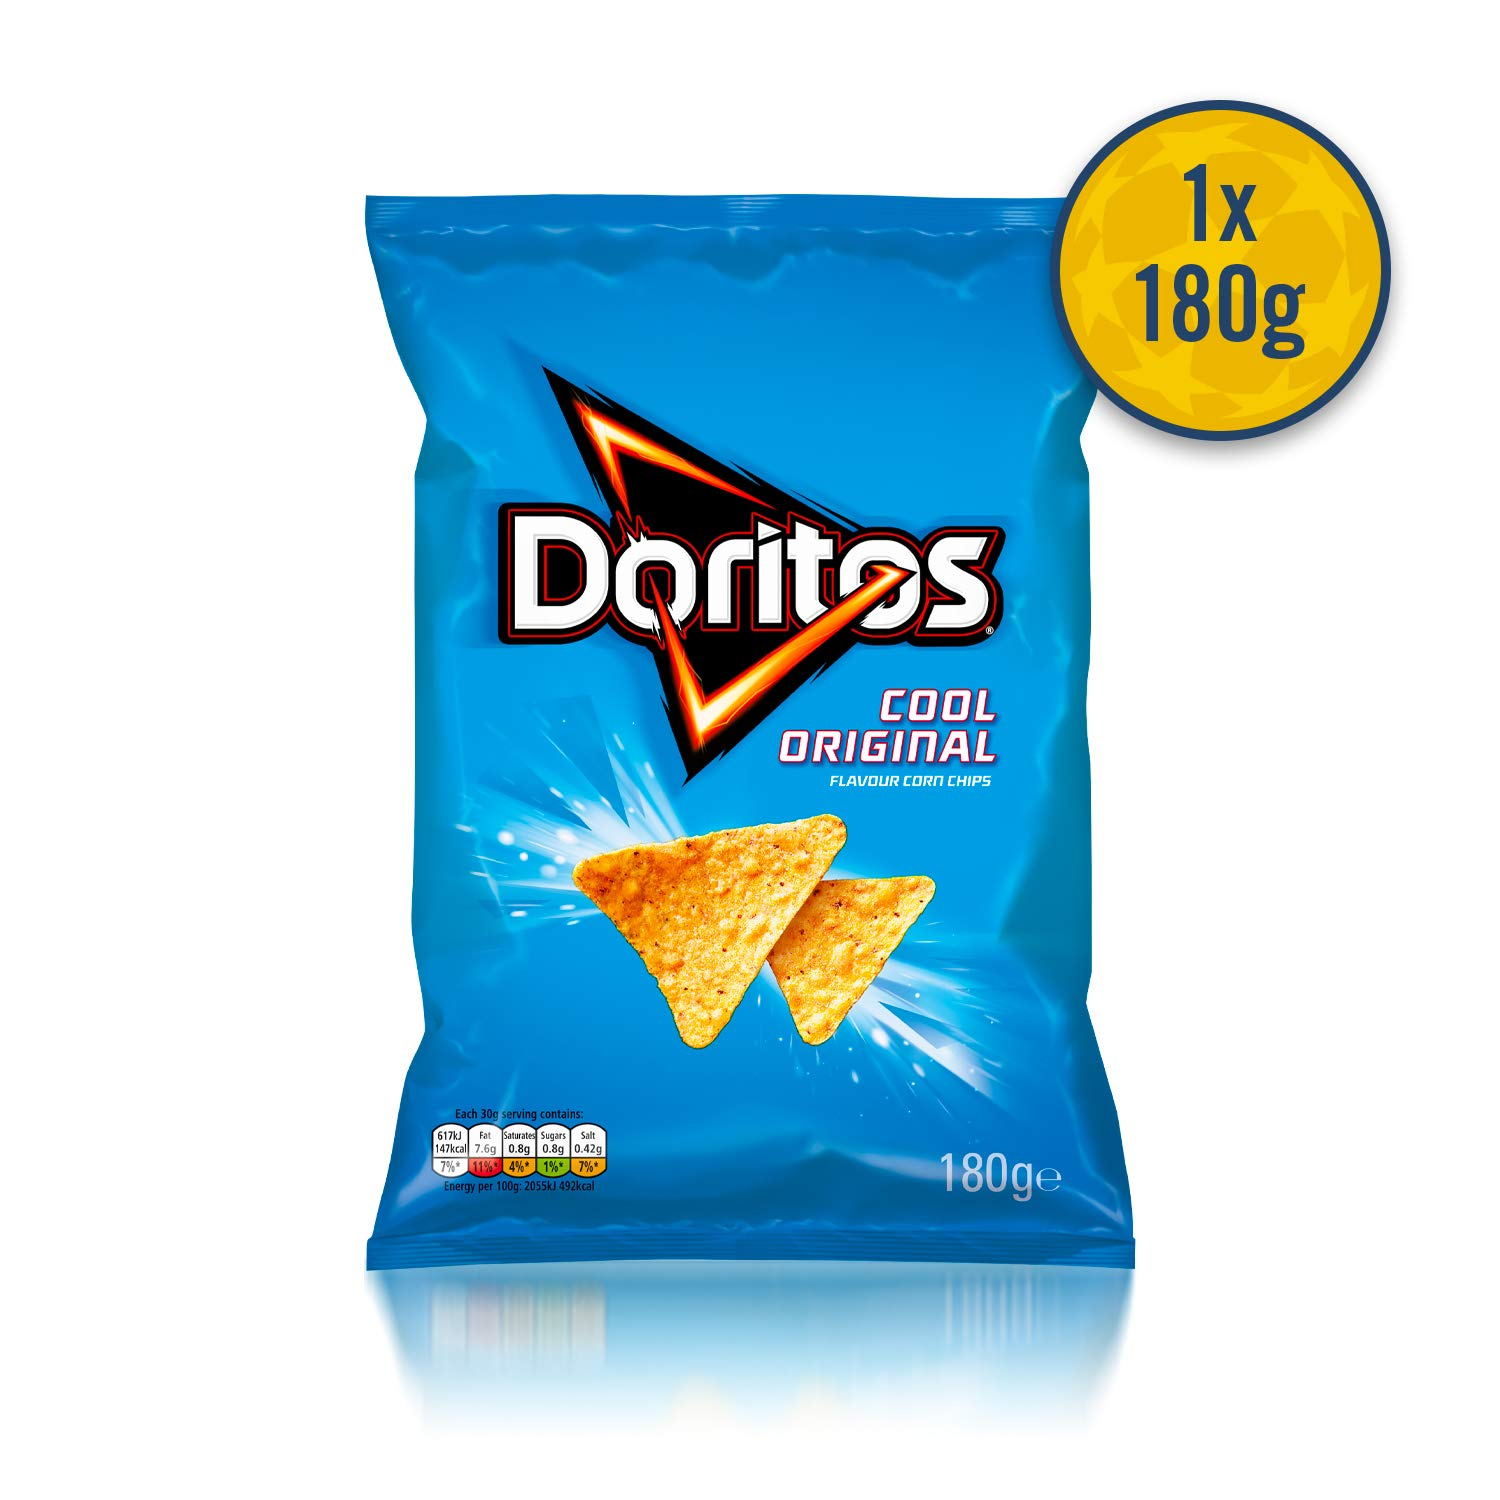 Walkers and Doritos UEFA Champions League Snacks Box